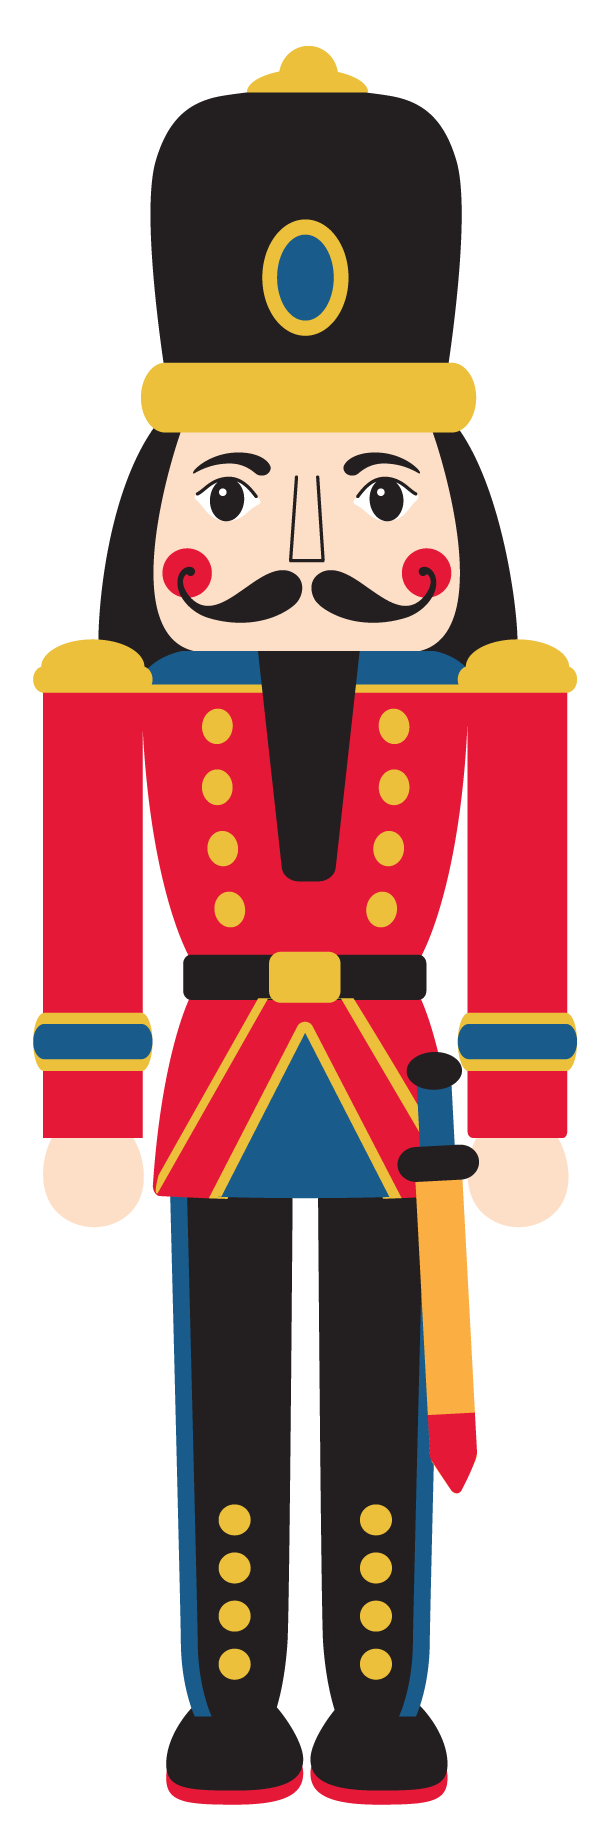 Head clipart nutcracker, Head nutcracker Transparent FREE.